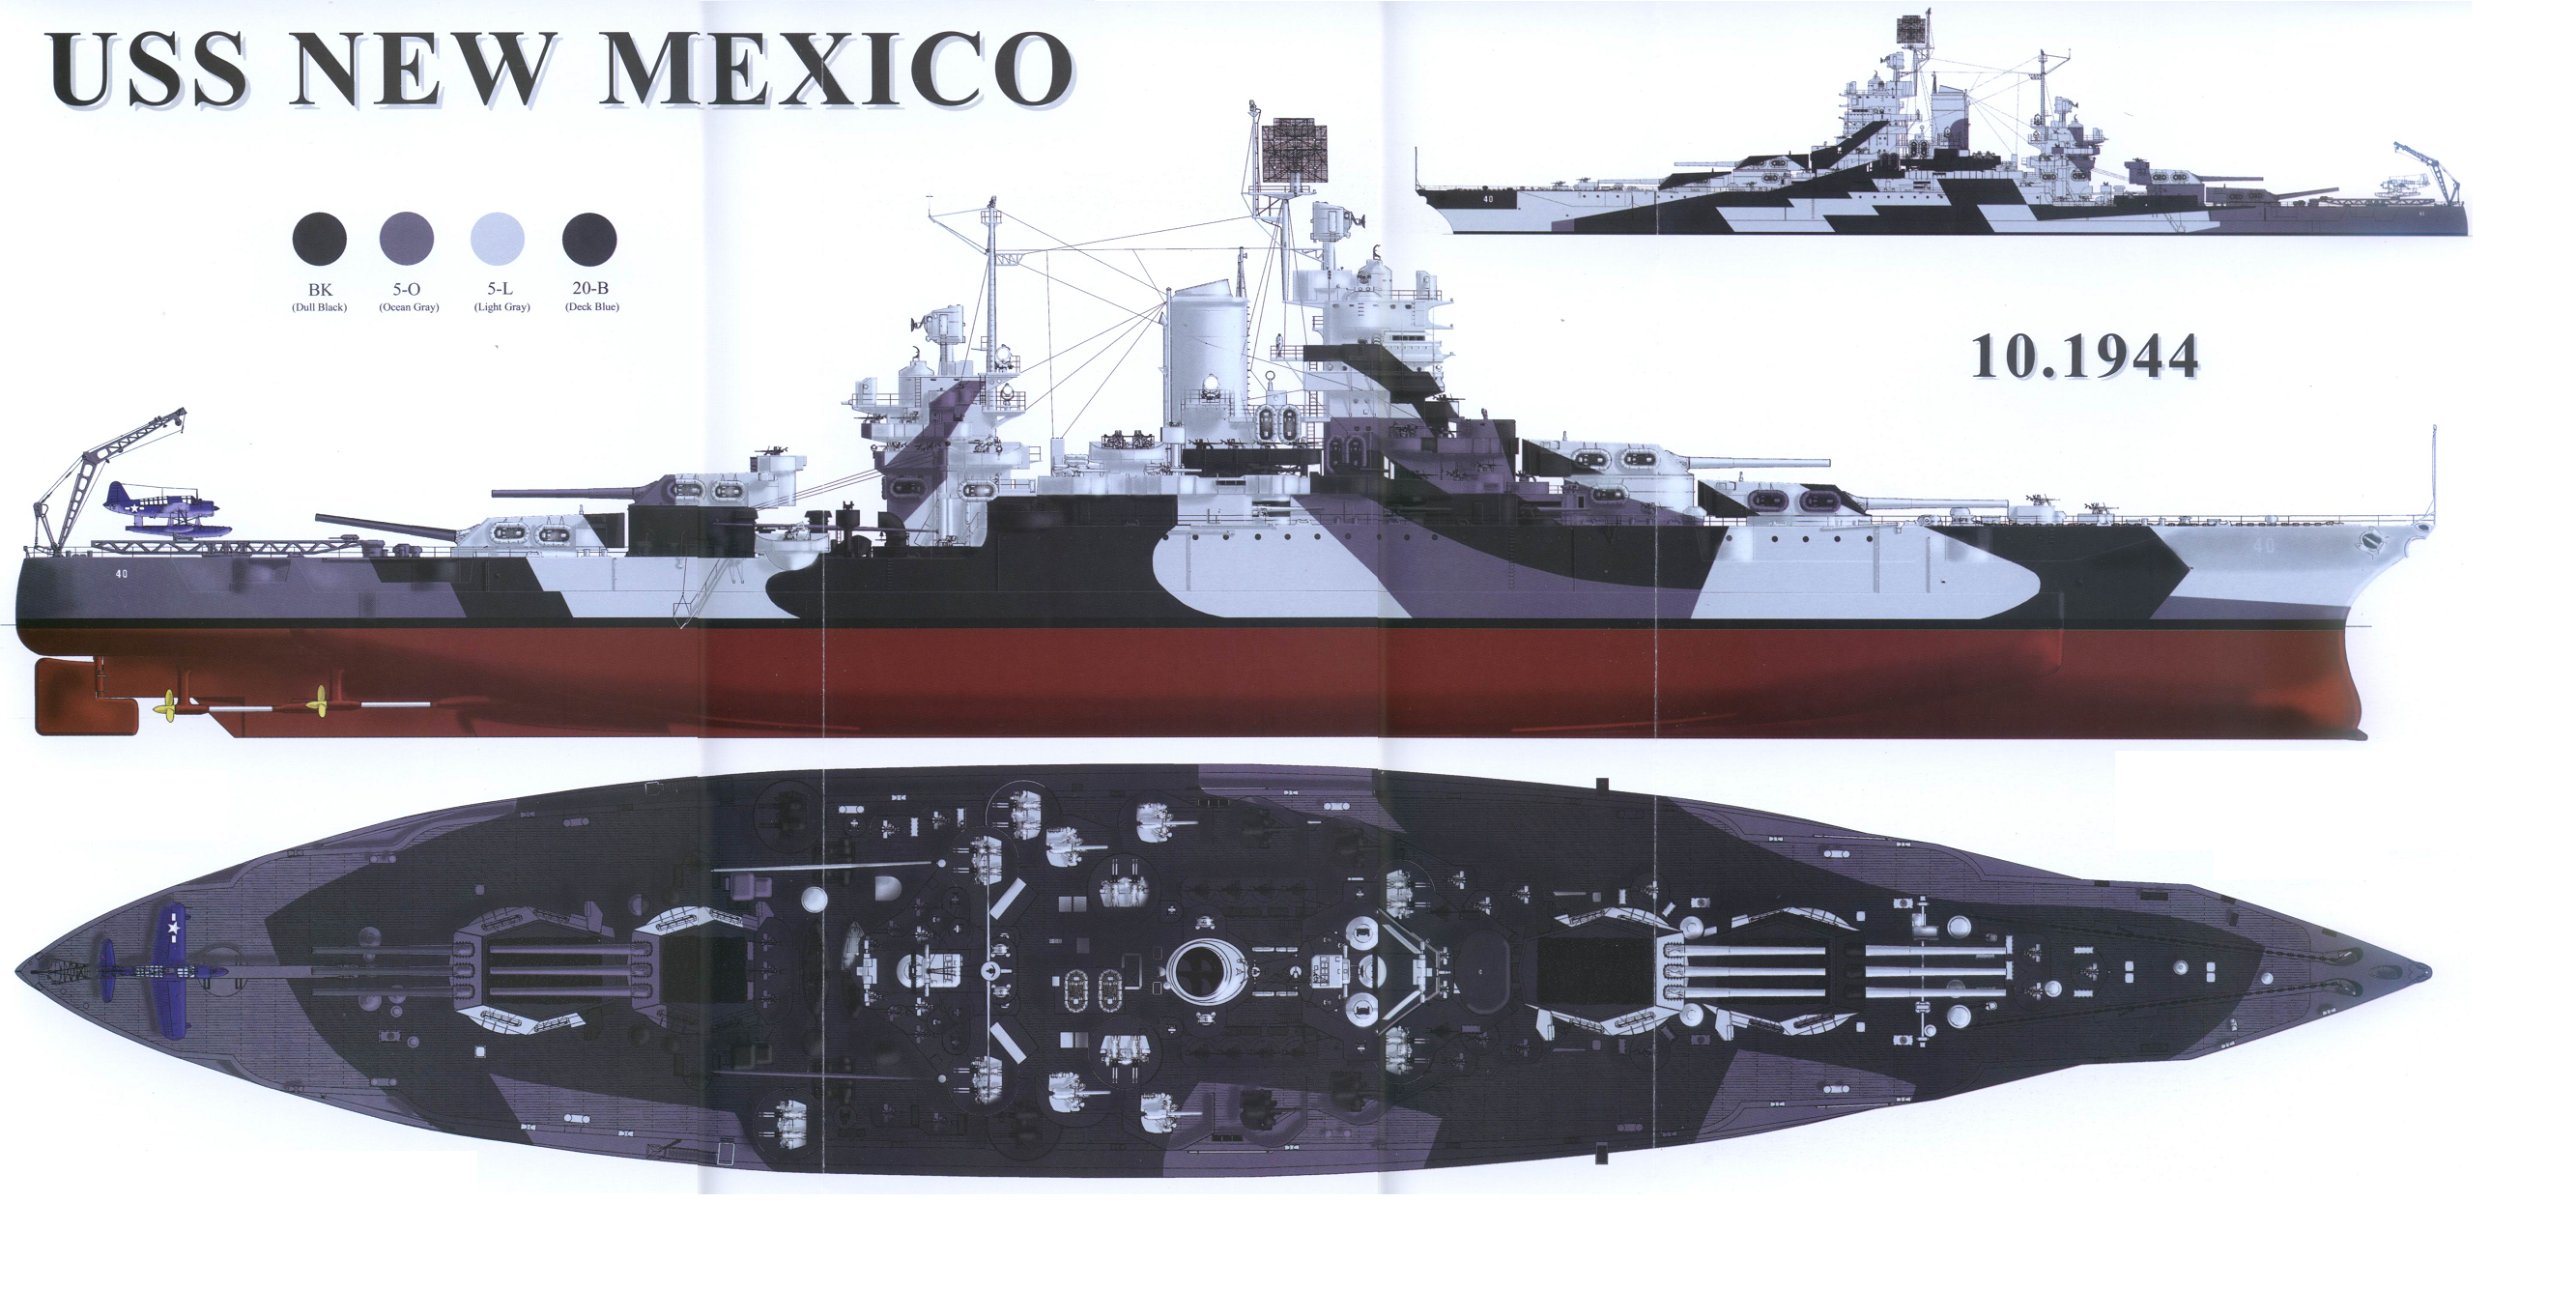 US NEW MEXICO BATTLESHIP - Yahoo Image Search Results